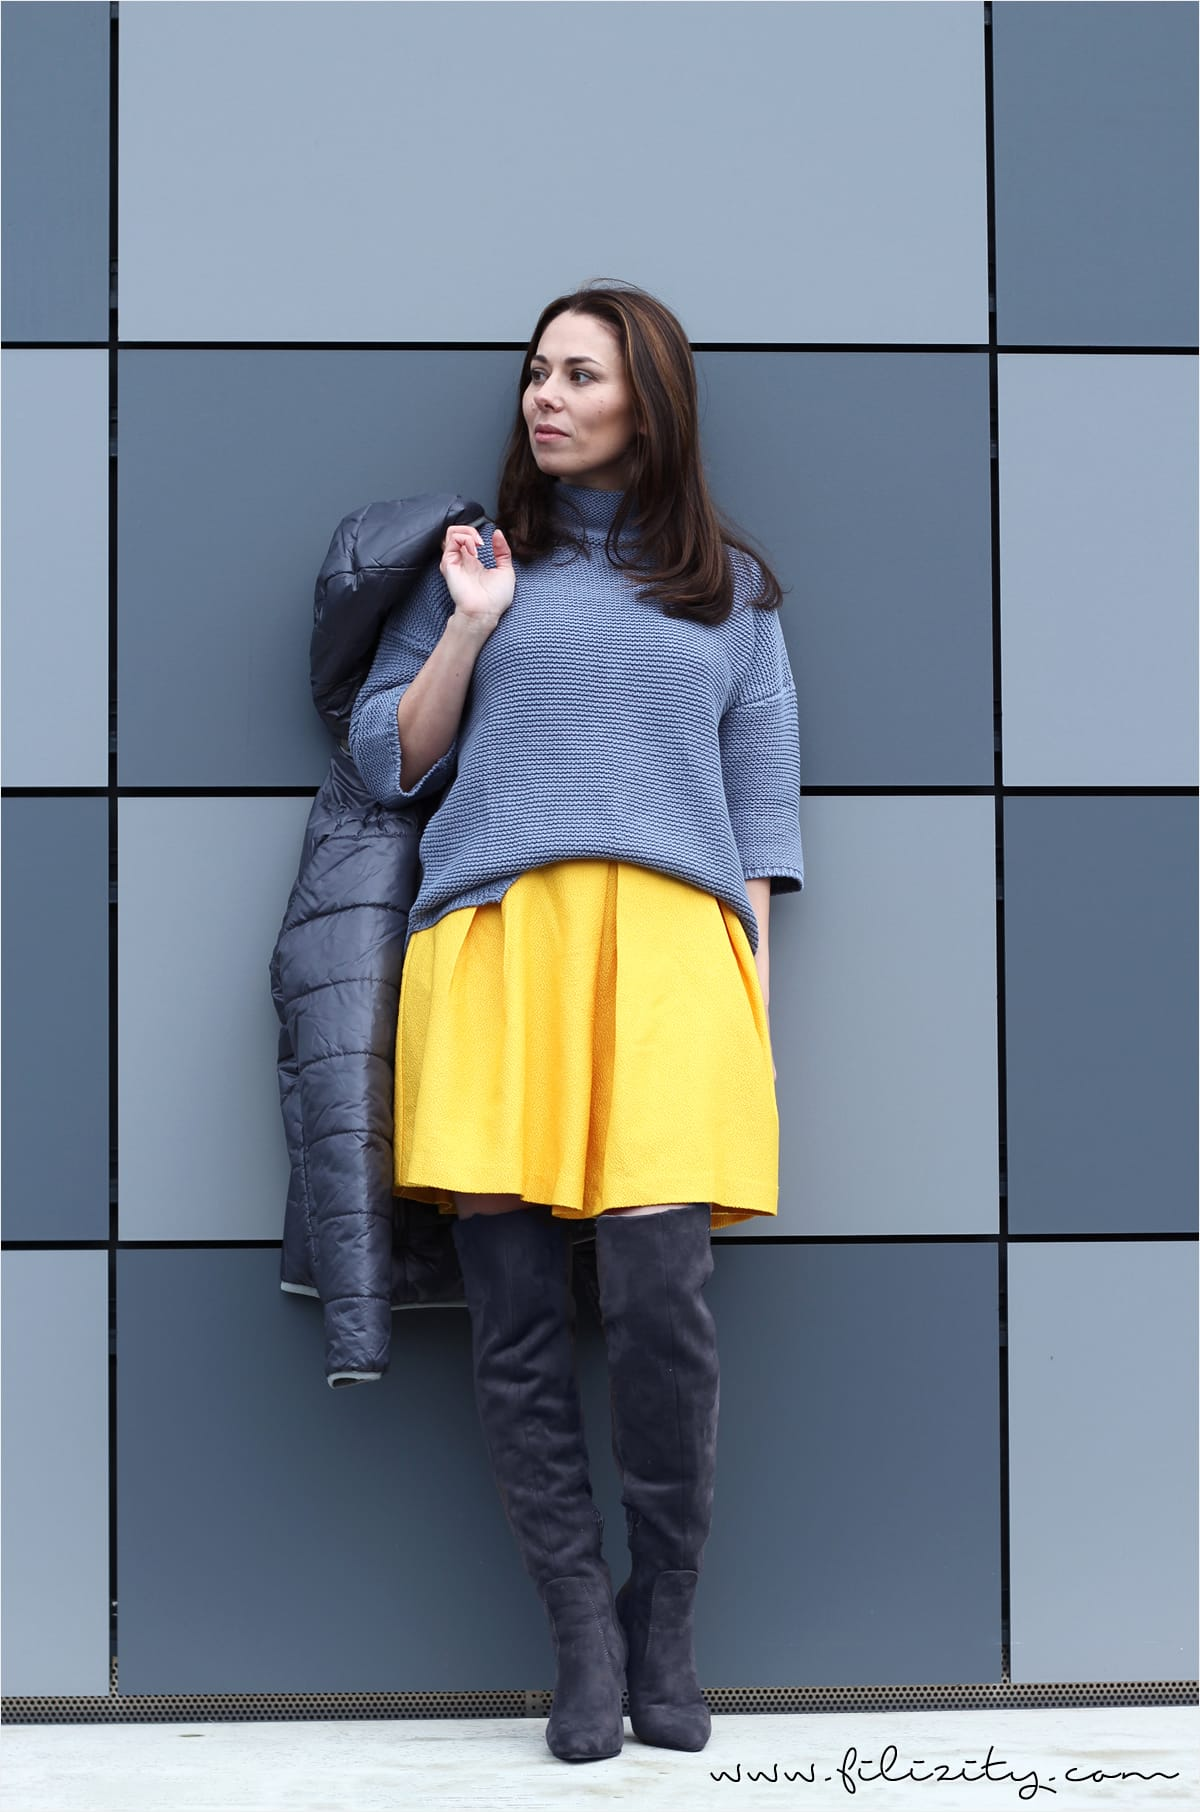 winter look with yellow skirt, overknee boots and knit sweater